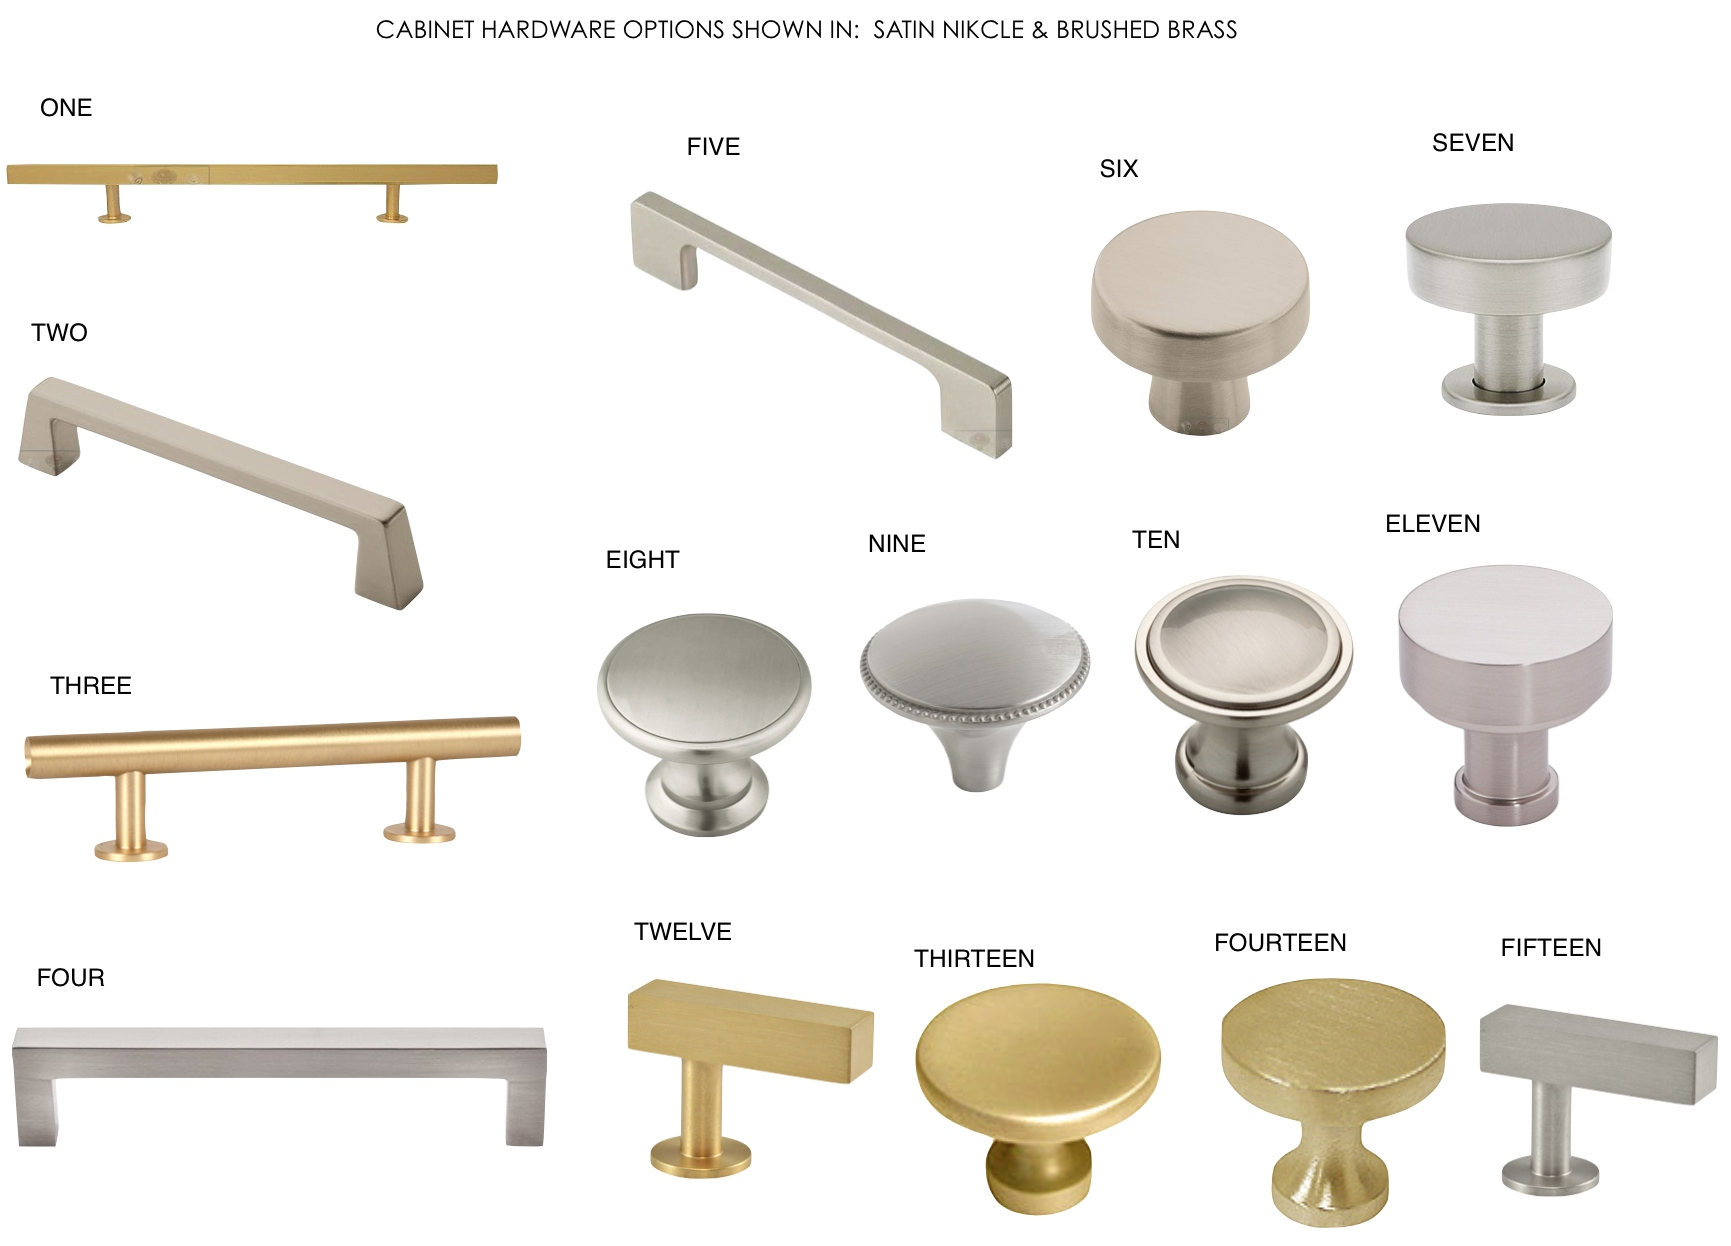 satin nickel and brushed brass cabinet hardware roundup